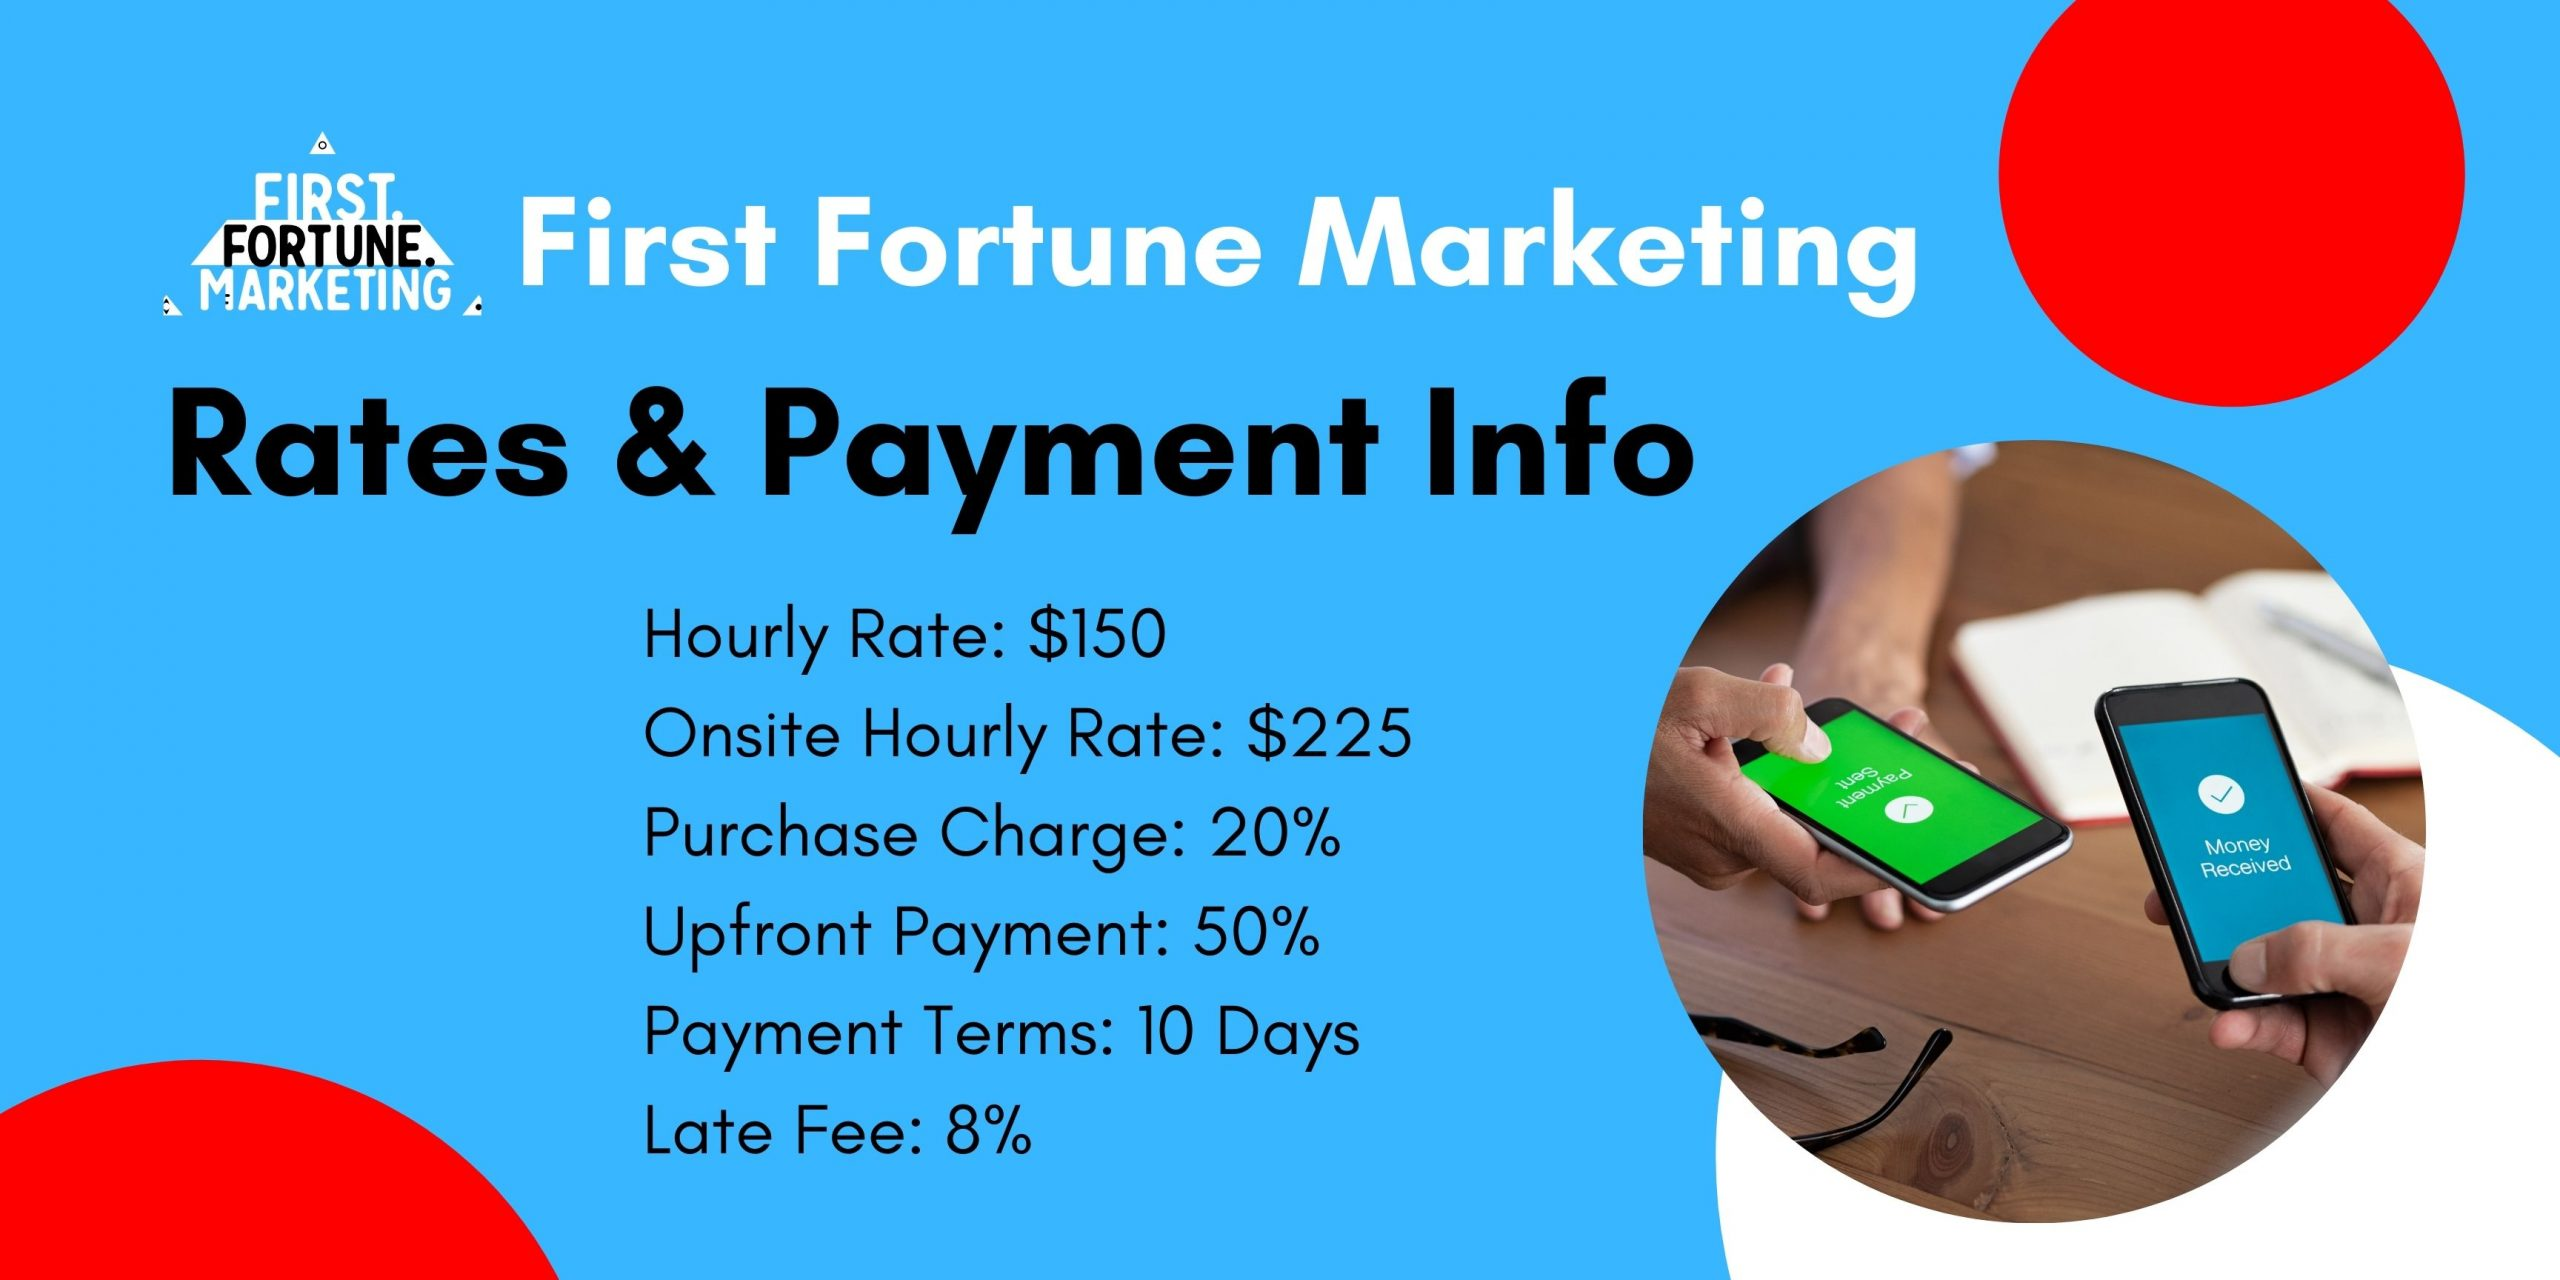 First Fortune Marketing Payment infographic